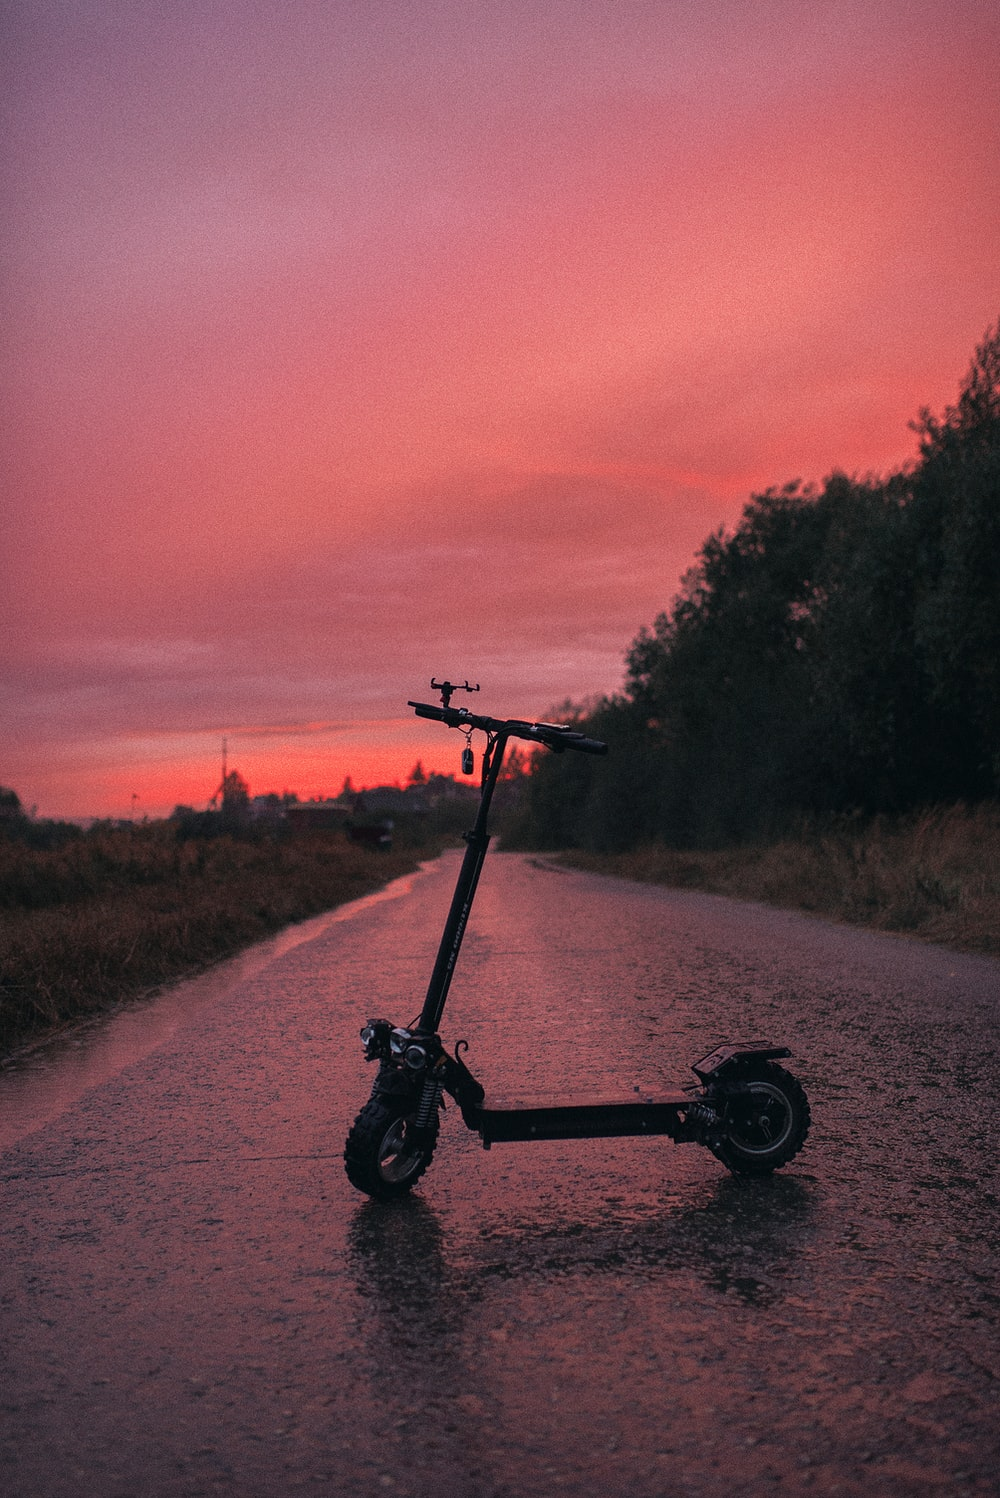 black and gray bicycle on road during sunset